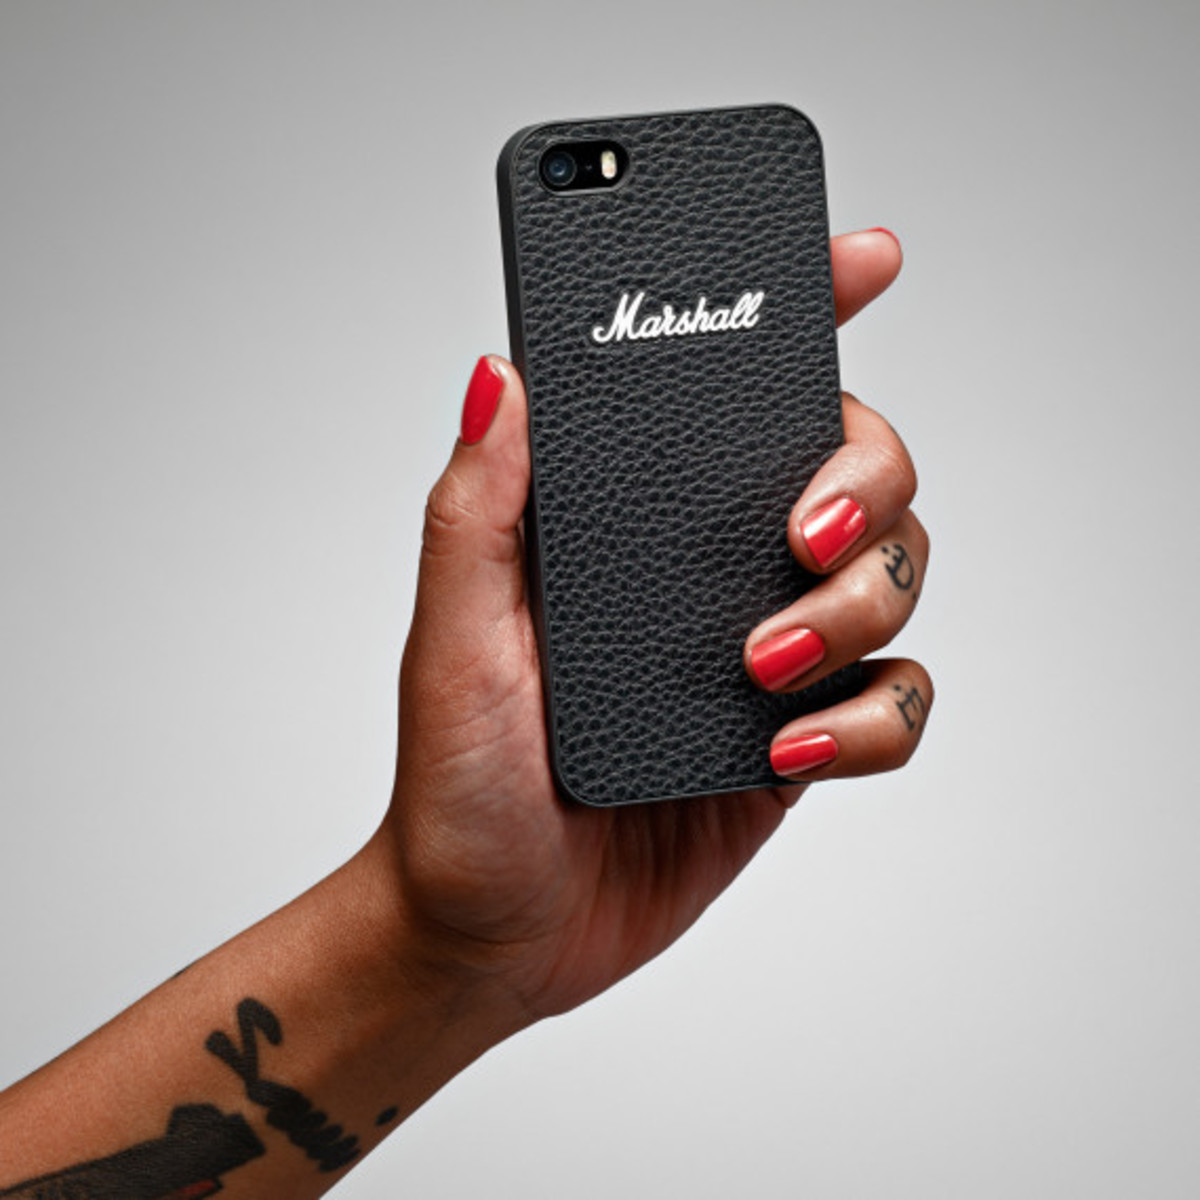 Marshall Phone Case - For Apple iPhone 5/5S & Samsung Galaxy S4 - 1